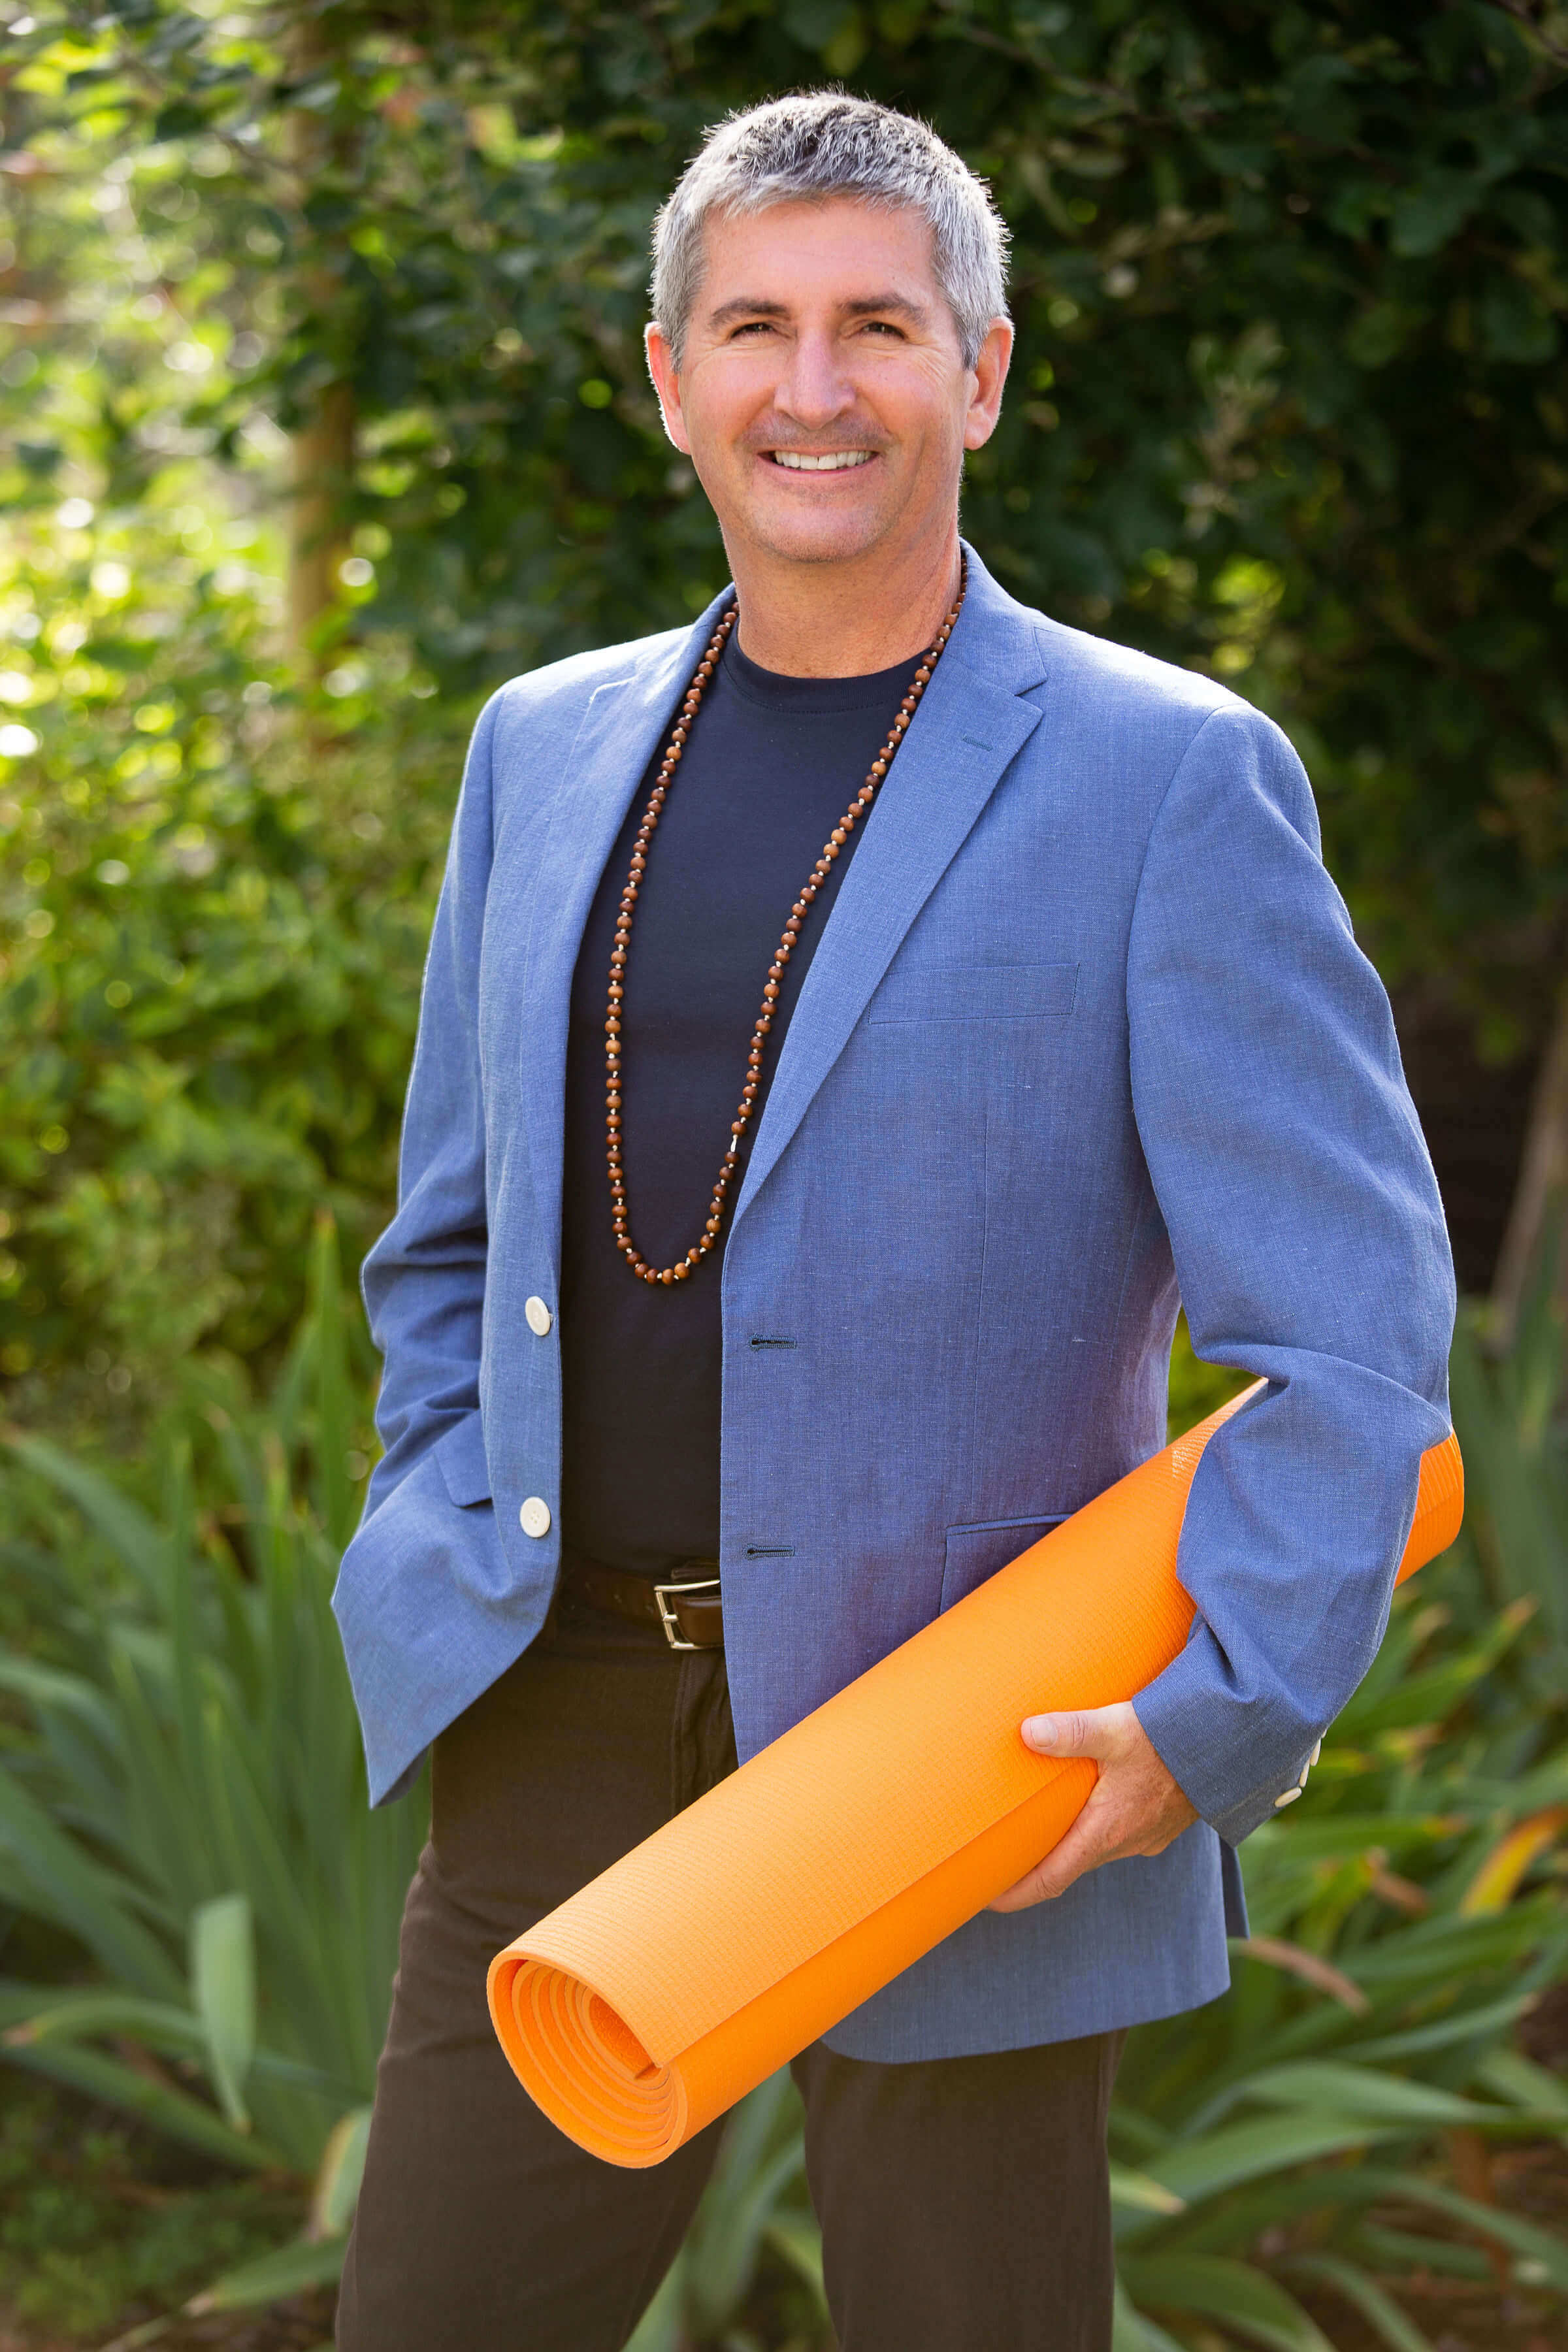 Neil Pearson in a blue jacket and shirt, with an orange yoga mat under his arm